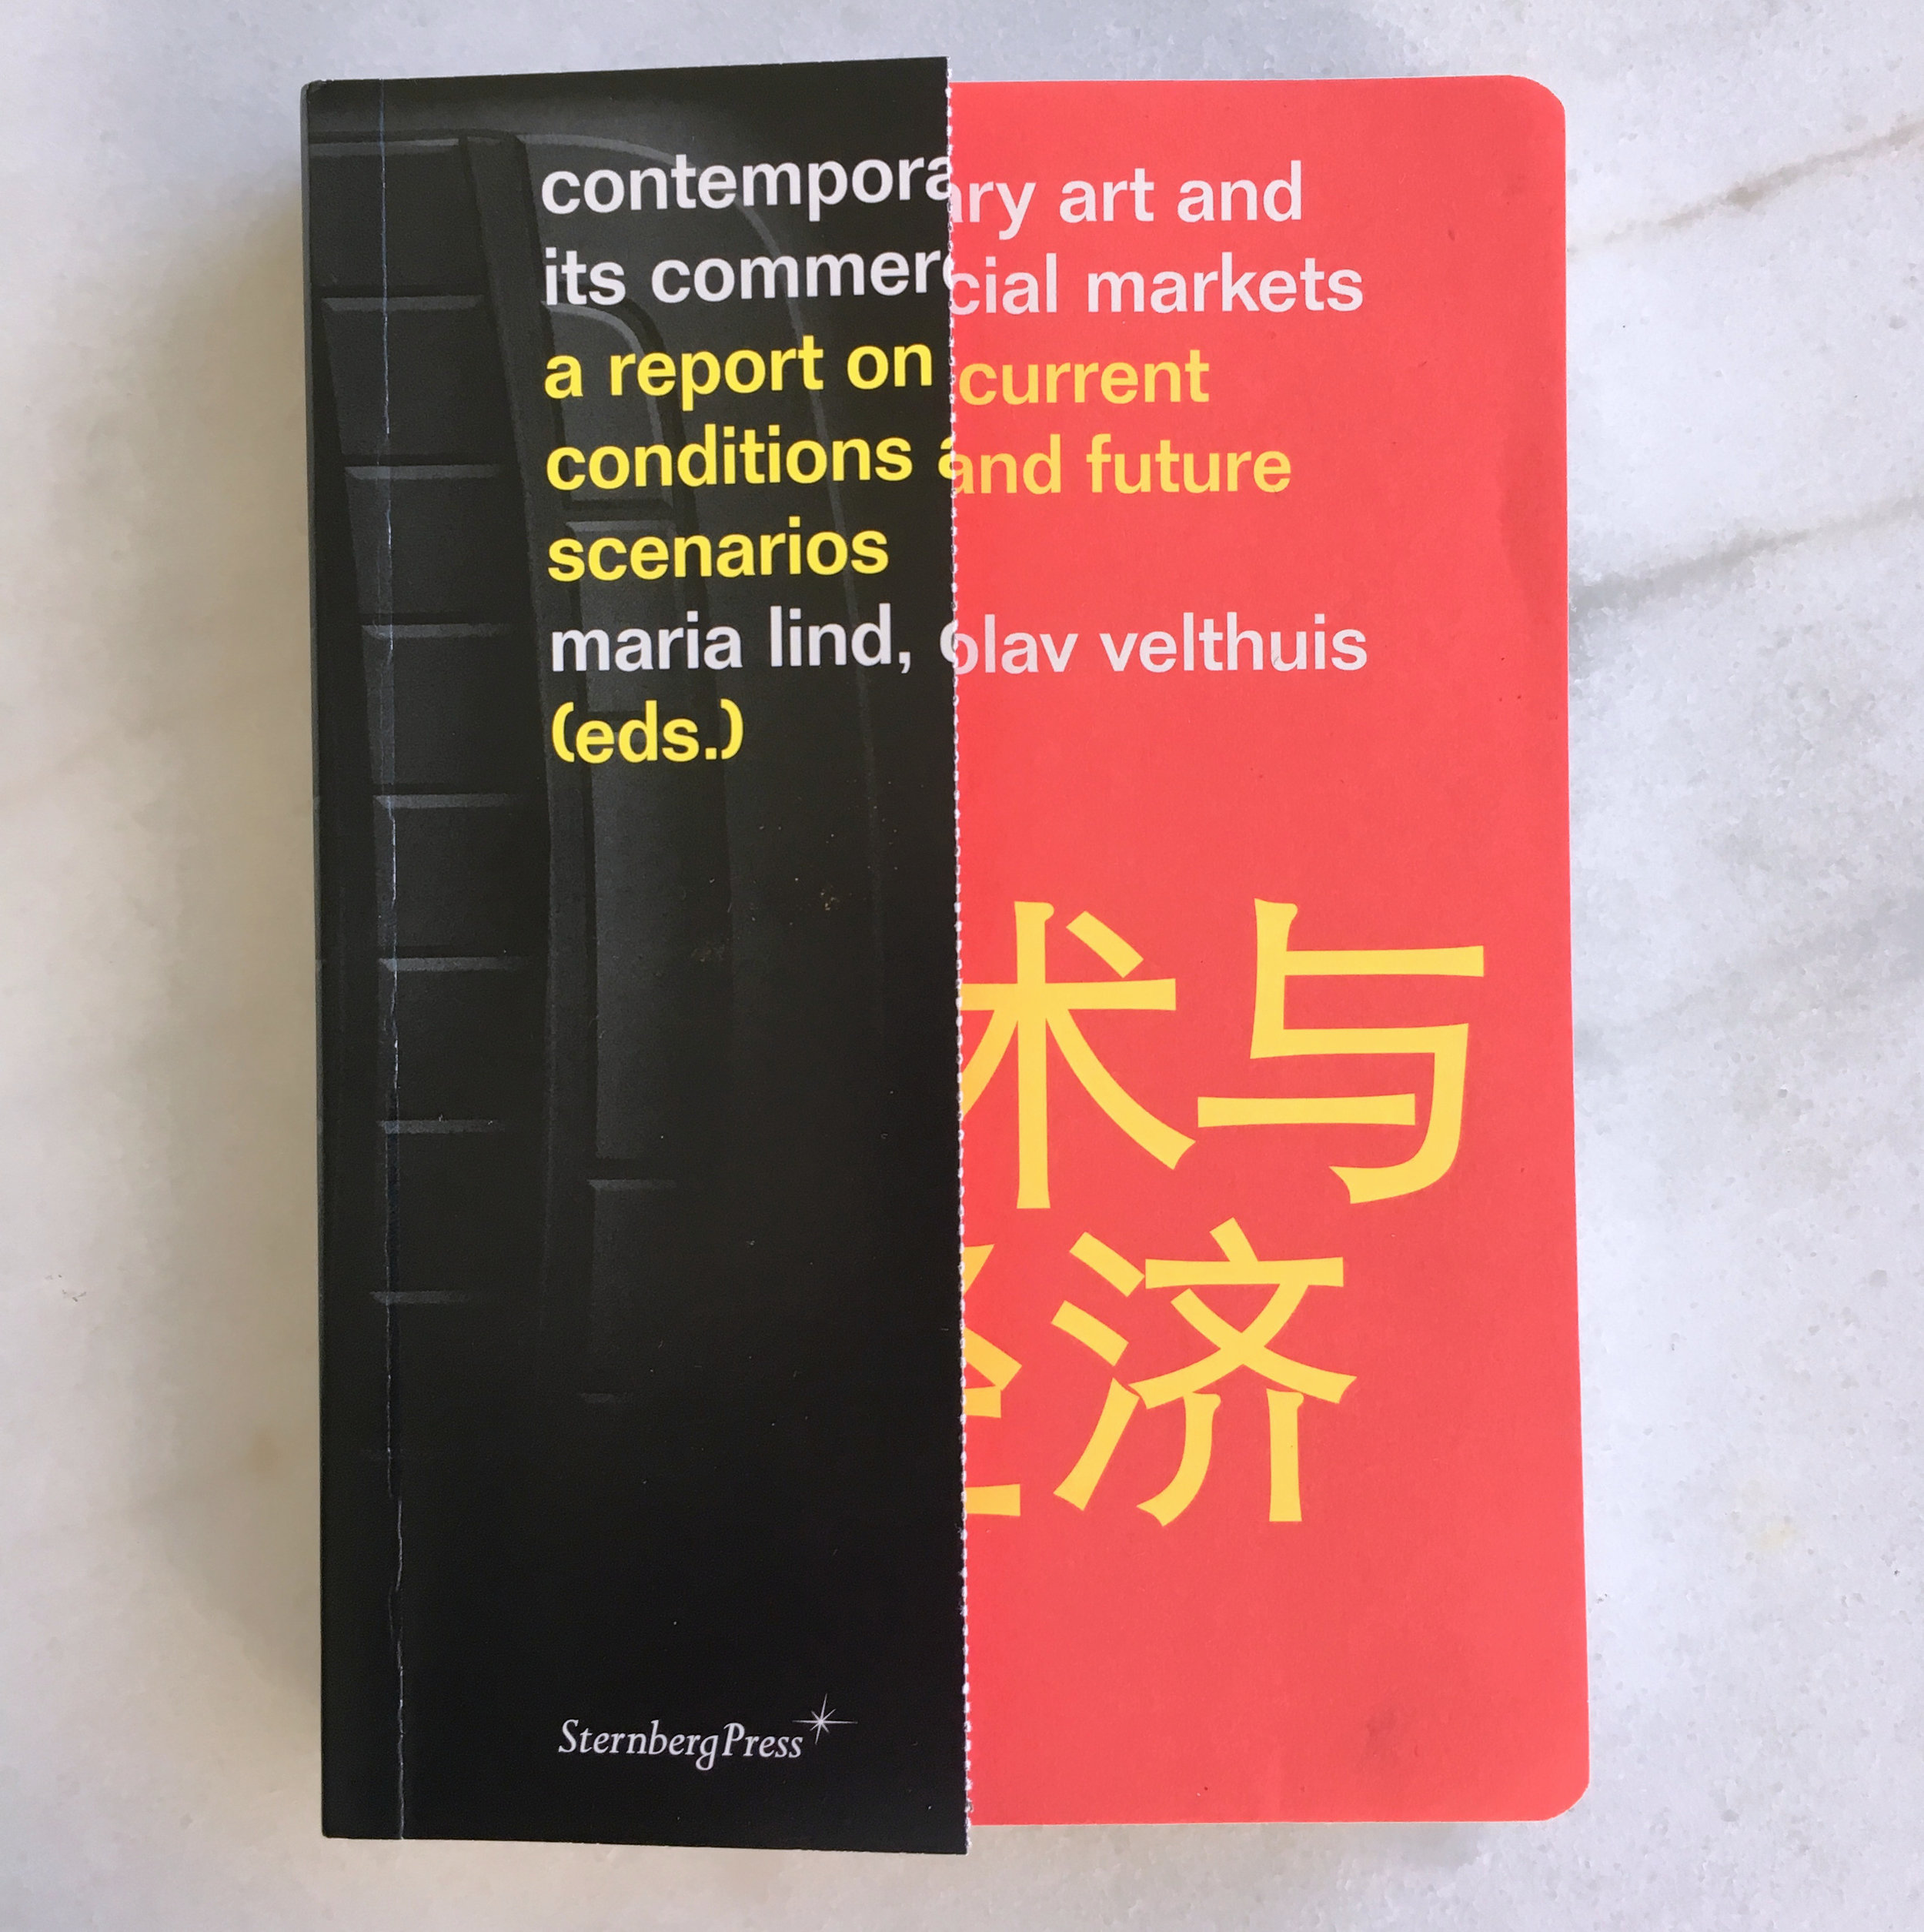 Contemporary Art and Its Commercial Markets: A Report on Current Conditions and Future Scenarios , edited by Maria Lind and Olav Velthuis (Berlin: Sternberg and Stockholm: Tensta konsthall, 2012).